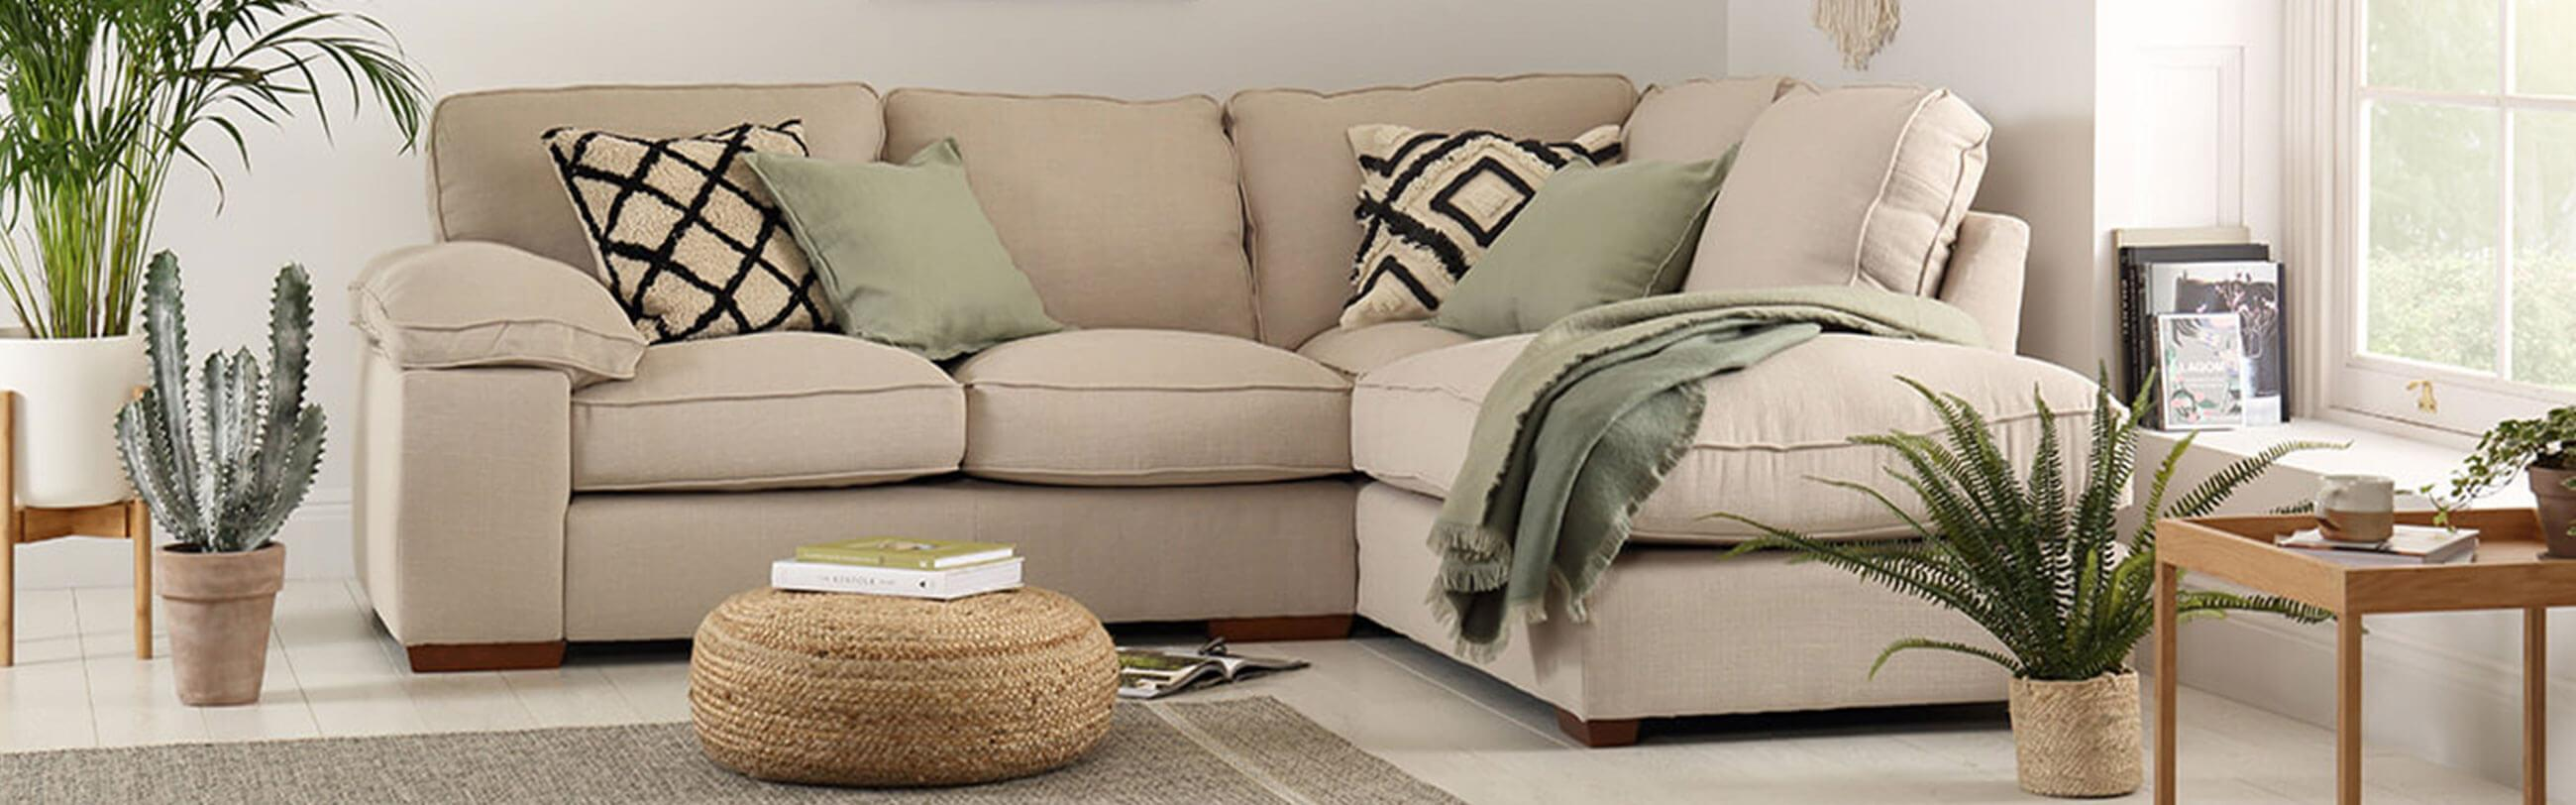 How To Style A Corner Sofa Inspiration Furniture And Choice